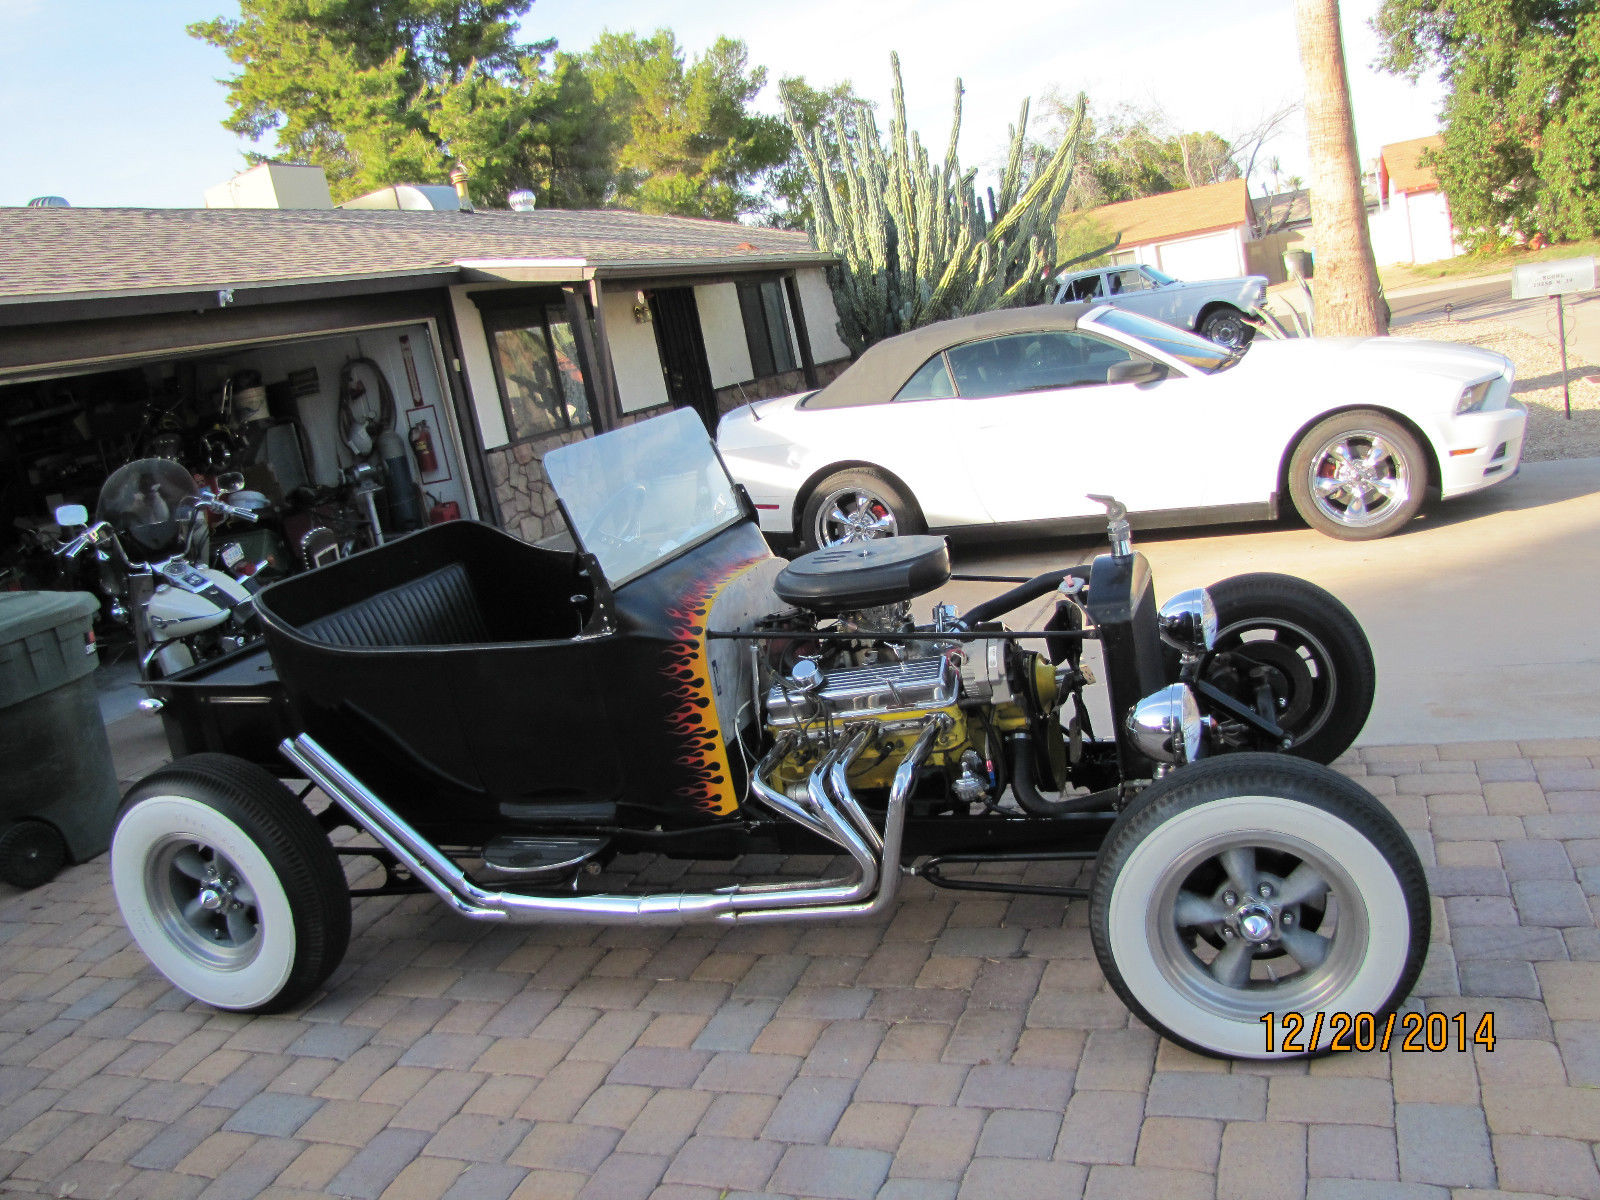 T Bucket Rat Rod Hot Rod Street Rod Custom Ford Chevy Harley on Painless Wiring Harness